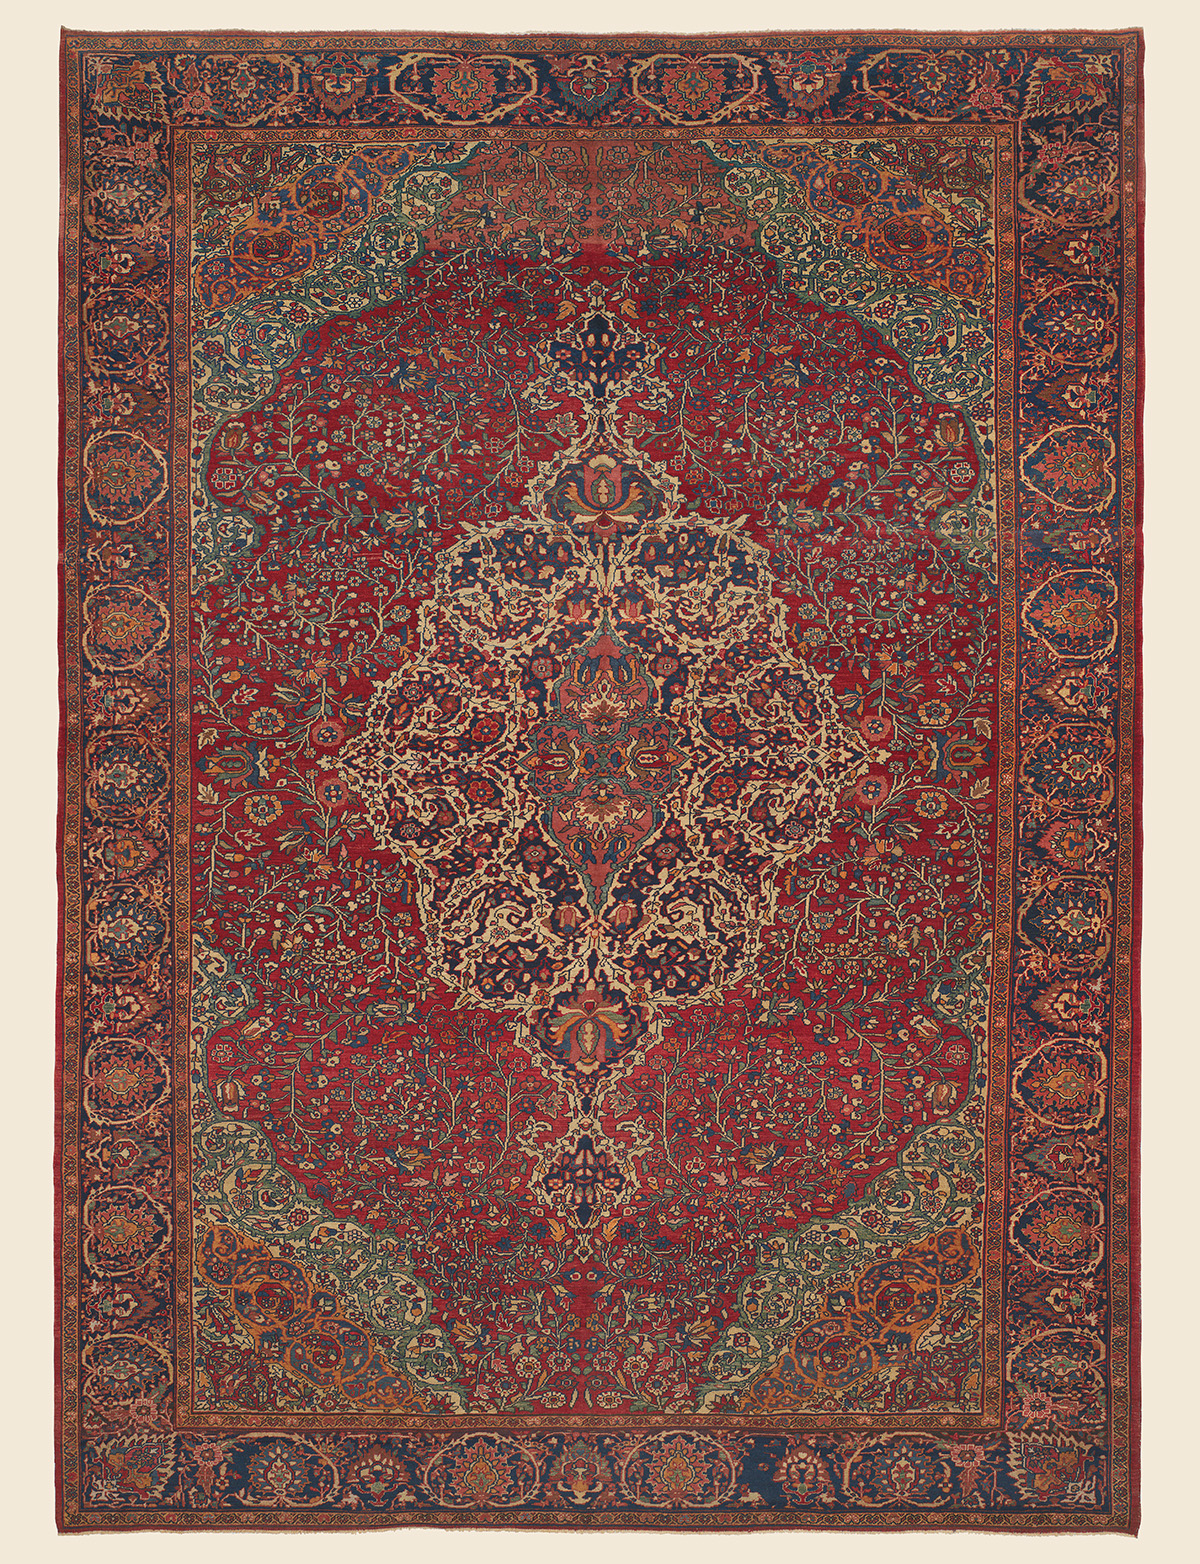 Circa 1900 Persian Ferahan Rug in Deeply Saturated abrash Jewel Tones and floral motifs